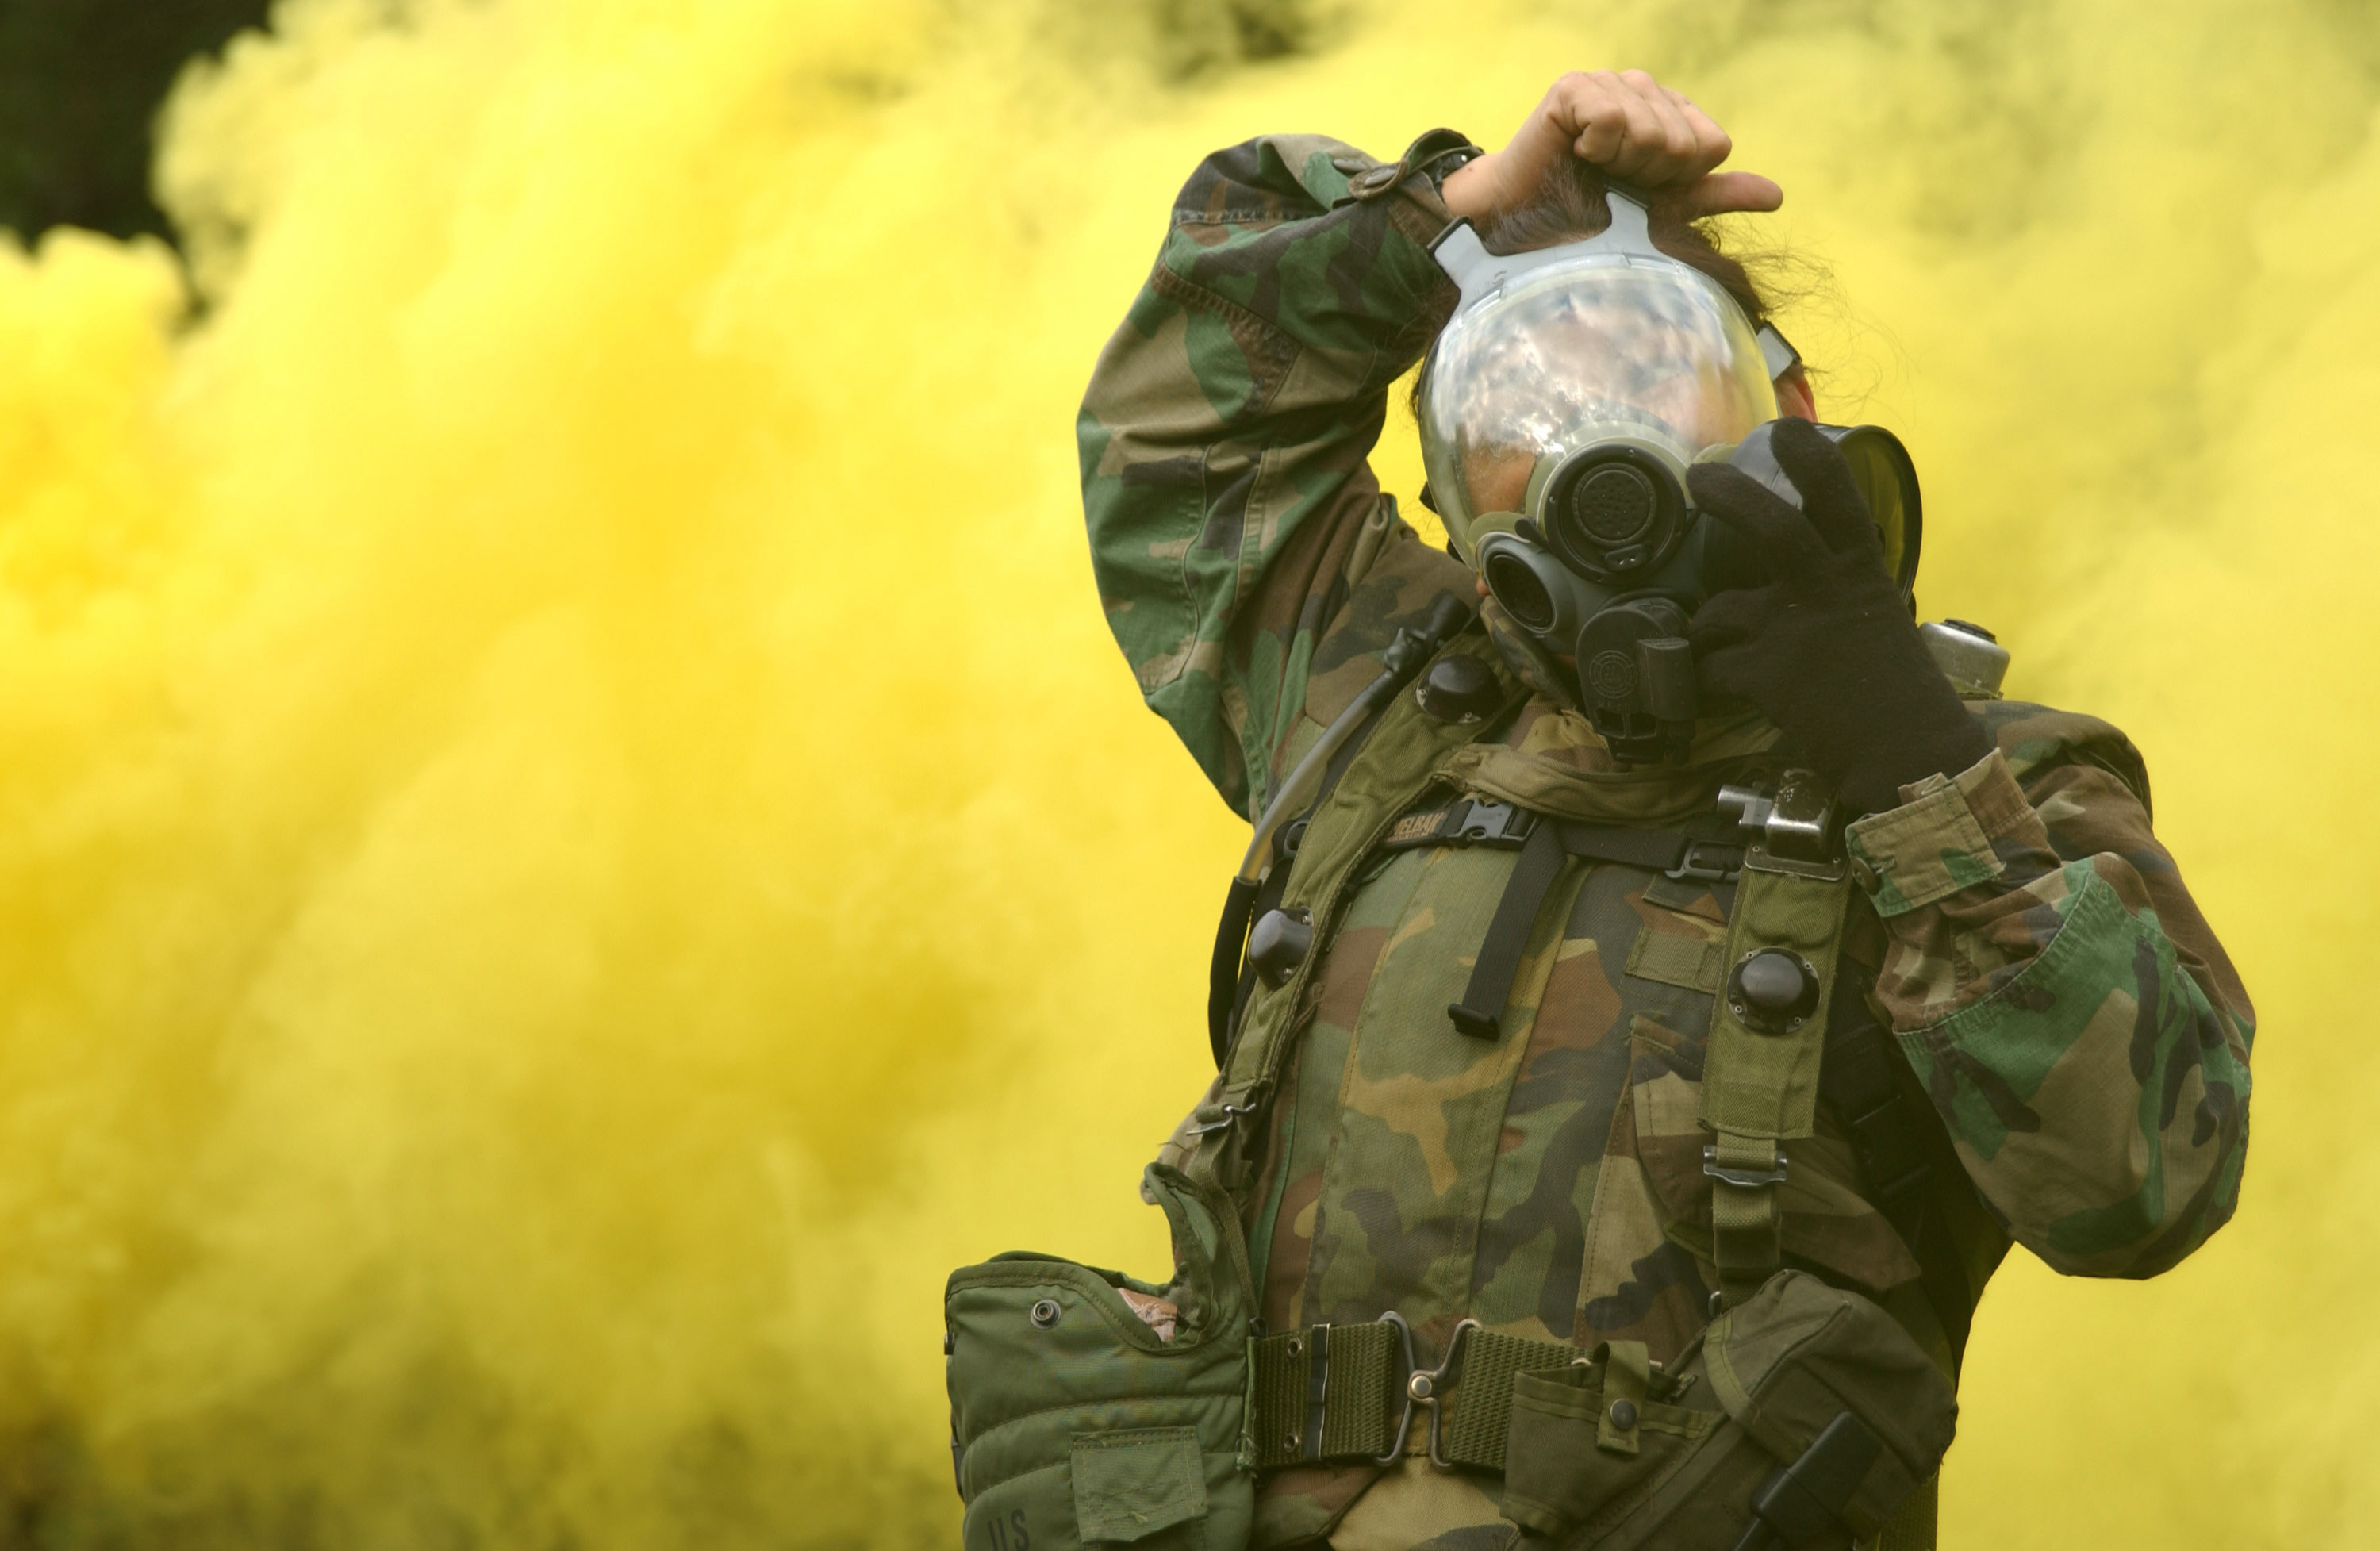 a profile overview of the company mustard gas State media in syria accuse militants from so-called islamic state of using mustard gas against government forces in the north-east.